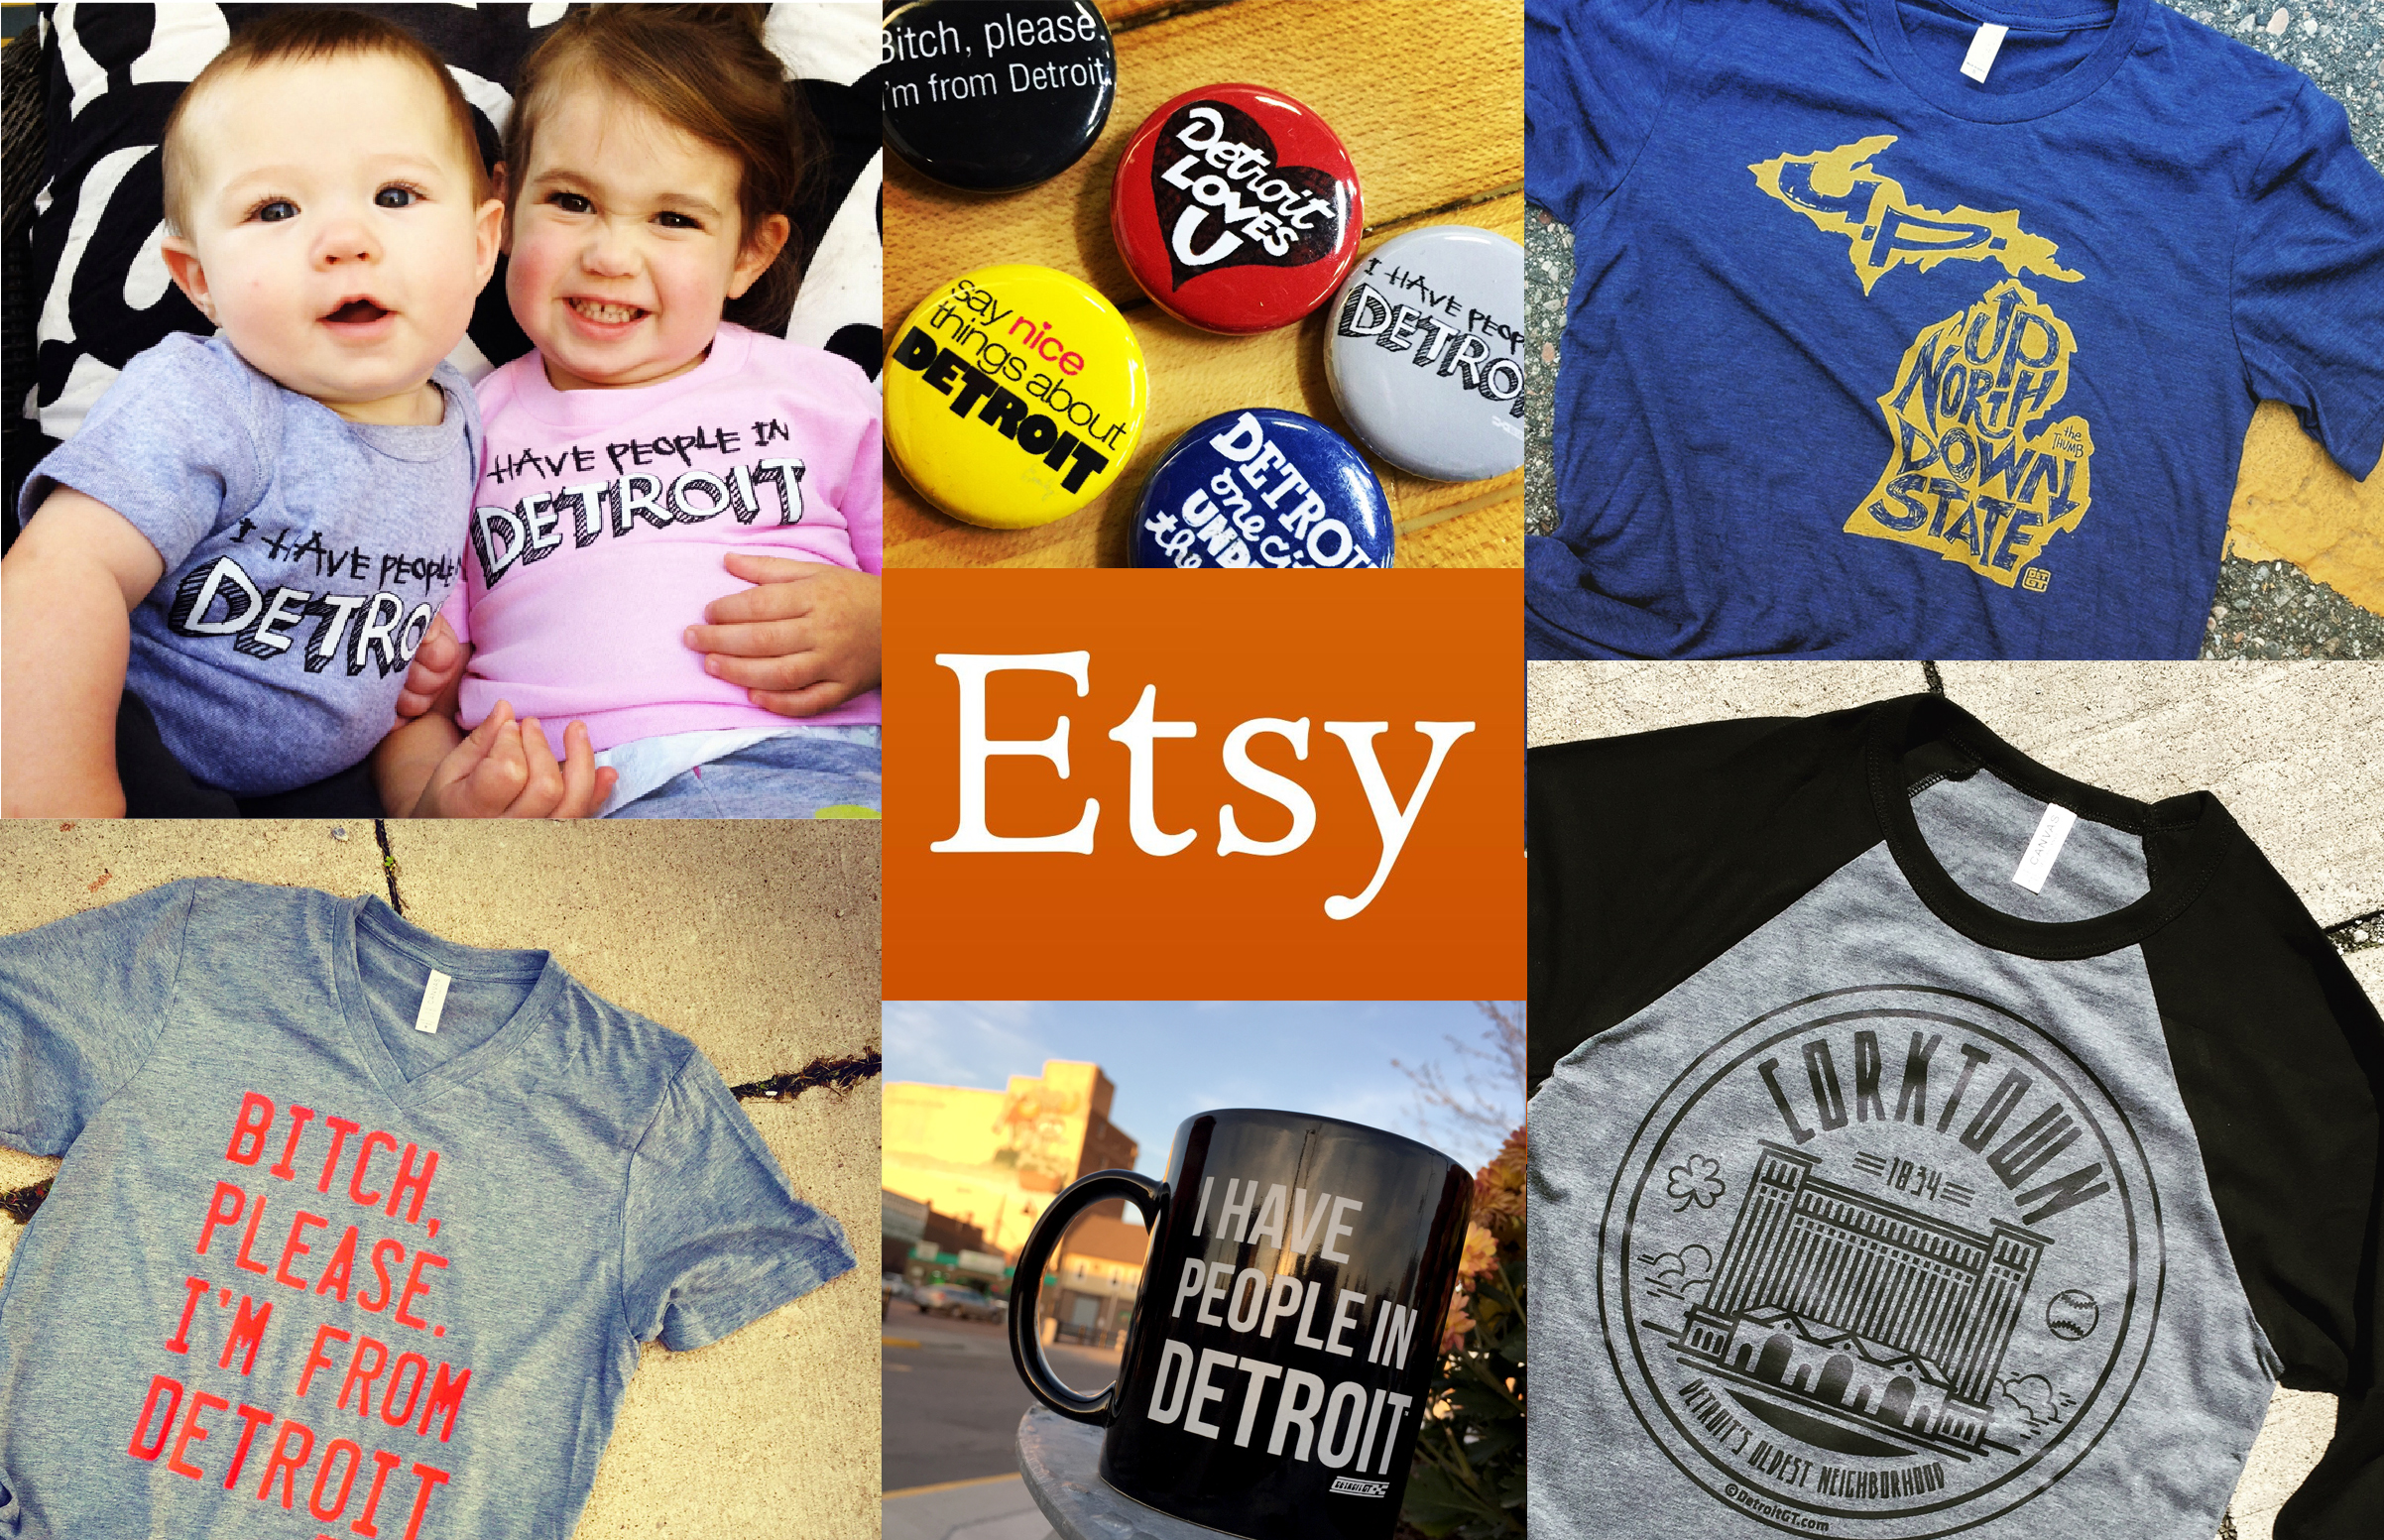 Click on ETSY to go to The Detroit GT Shop